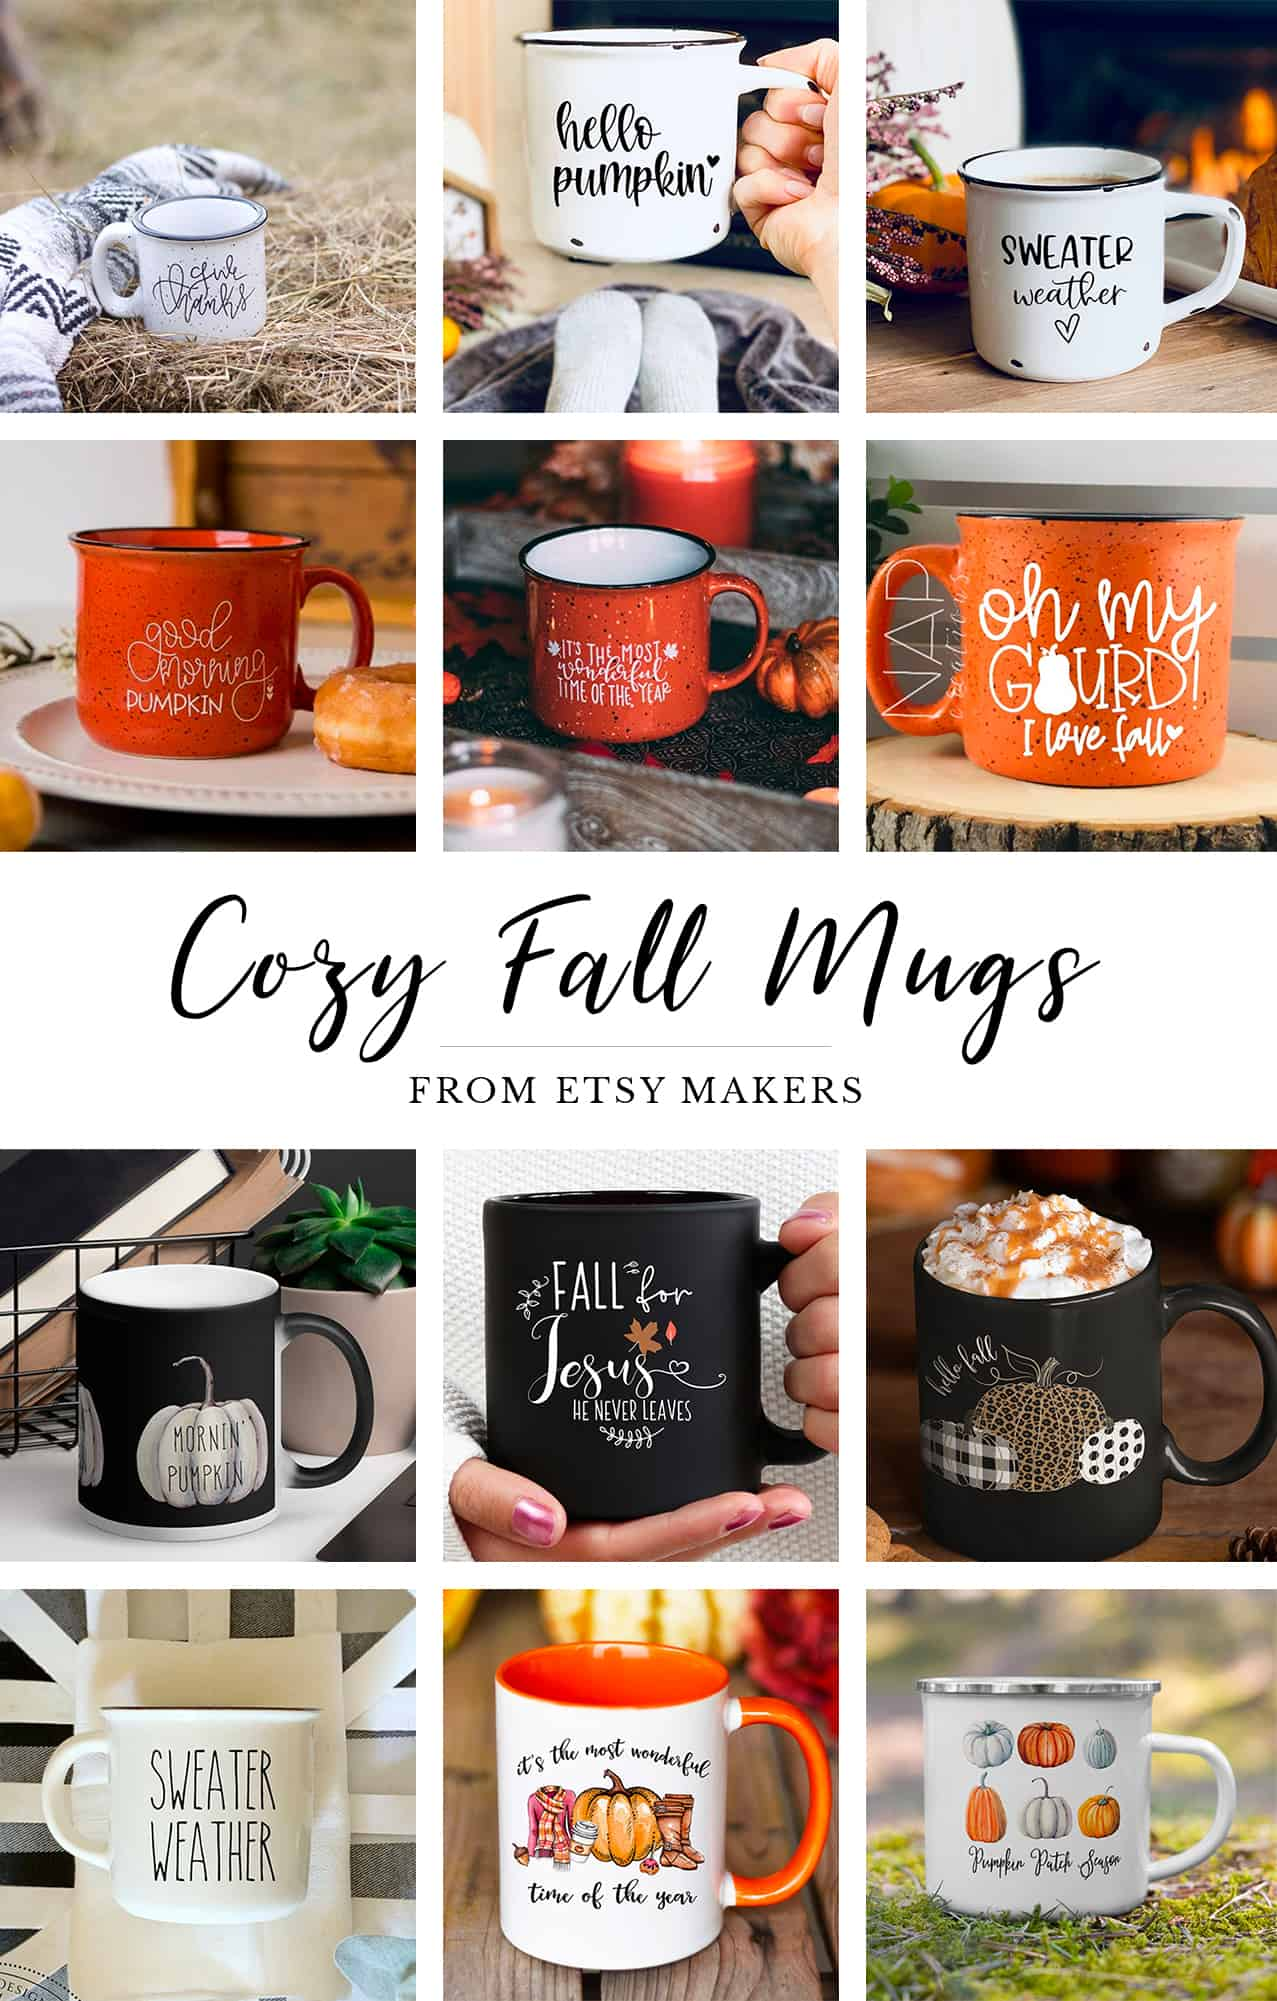 12 of the coziest fall mugs you'll love to curl up with!